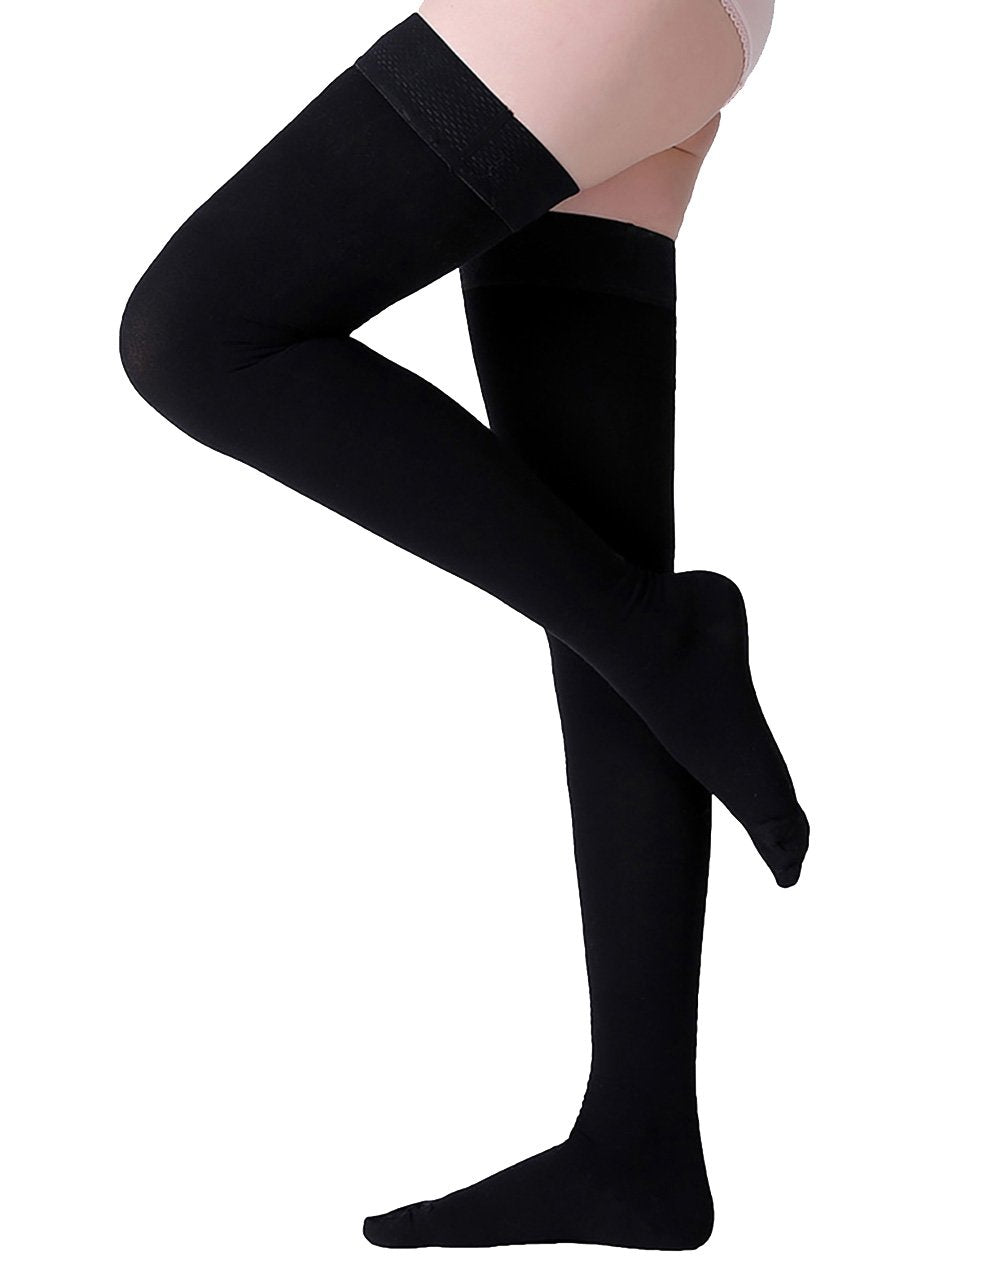 8c2ee8f3e Braces   Supports - Thigh High Compression Stockings